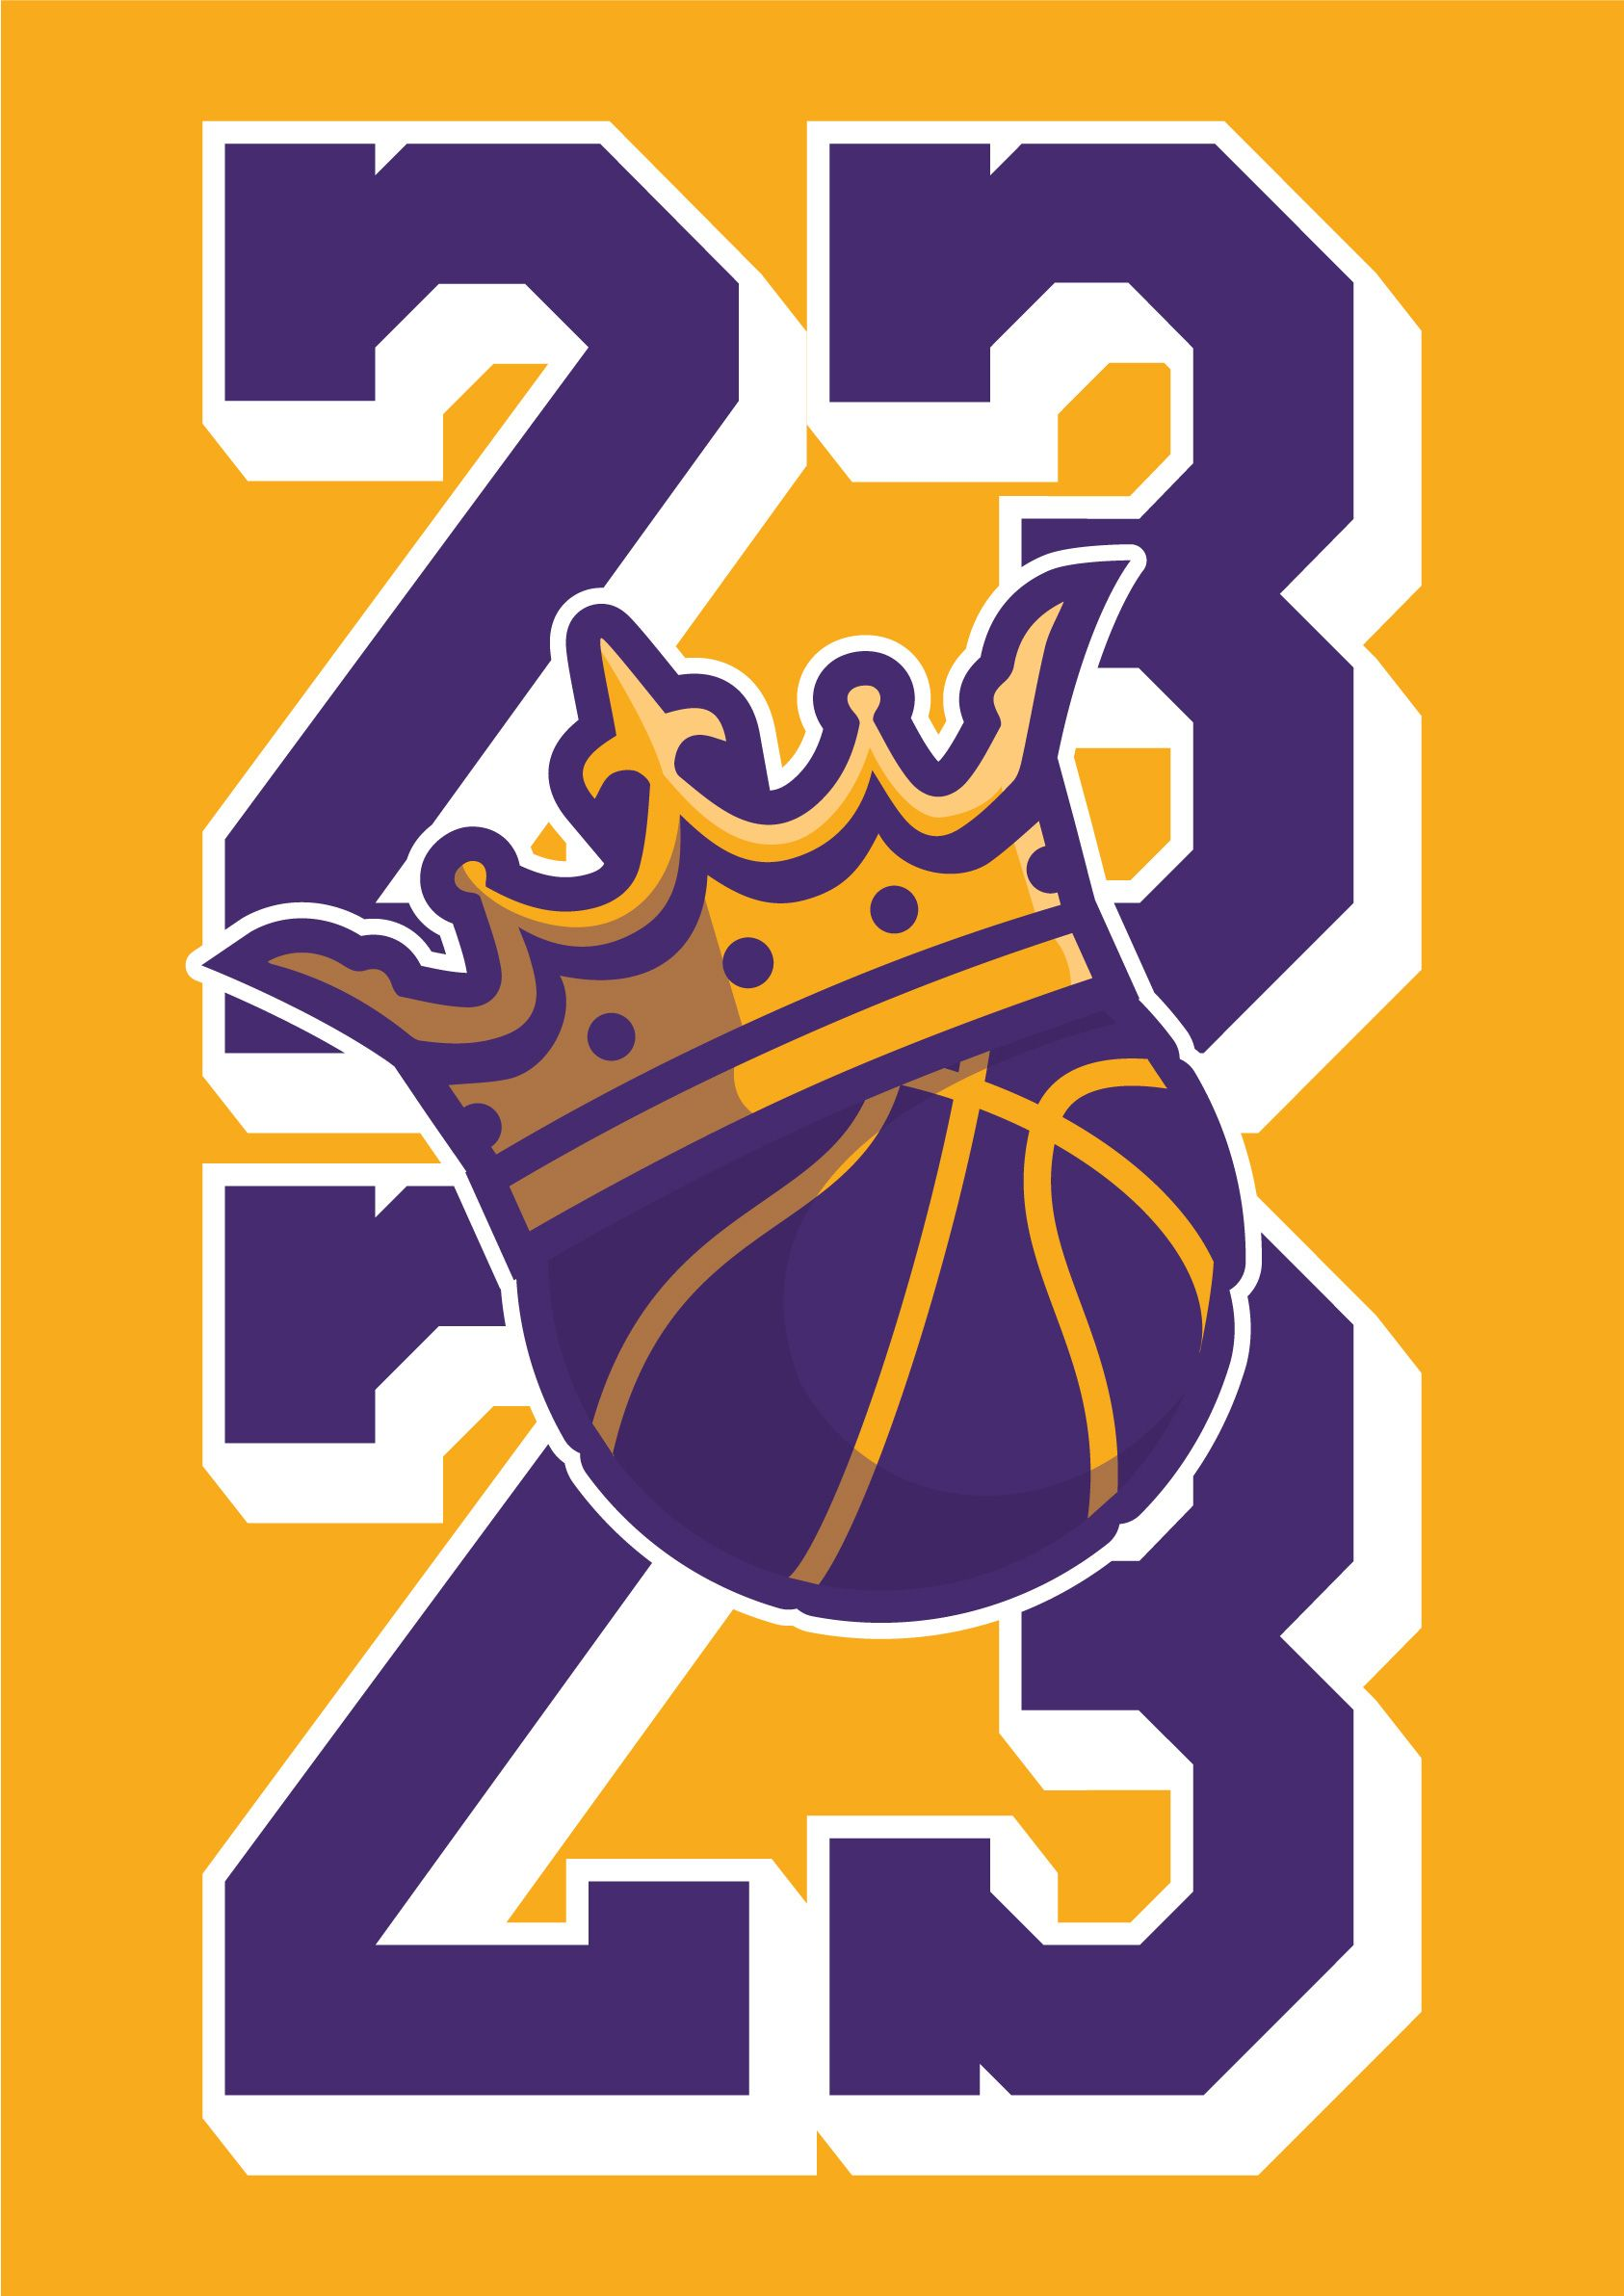 b3ad3d45d56 Inspired by Lebron James moving to the Los Angeles Lakers.  basketball  nba   court  minimal  print  poster  art  artwork  digital  downloadable ...